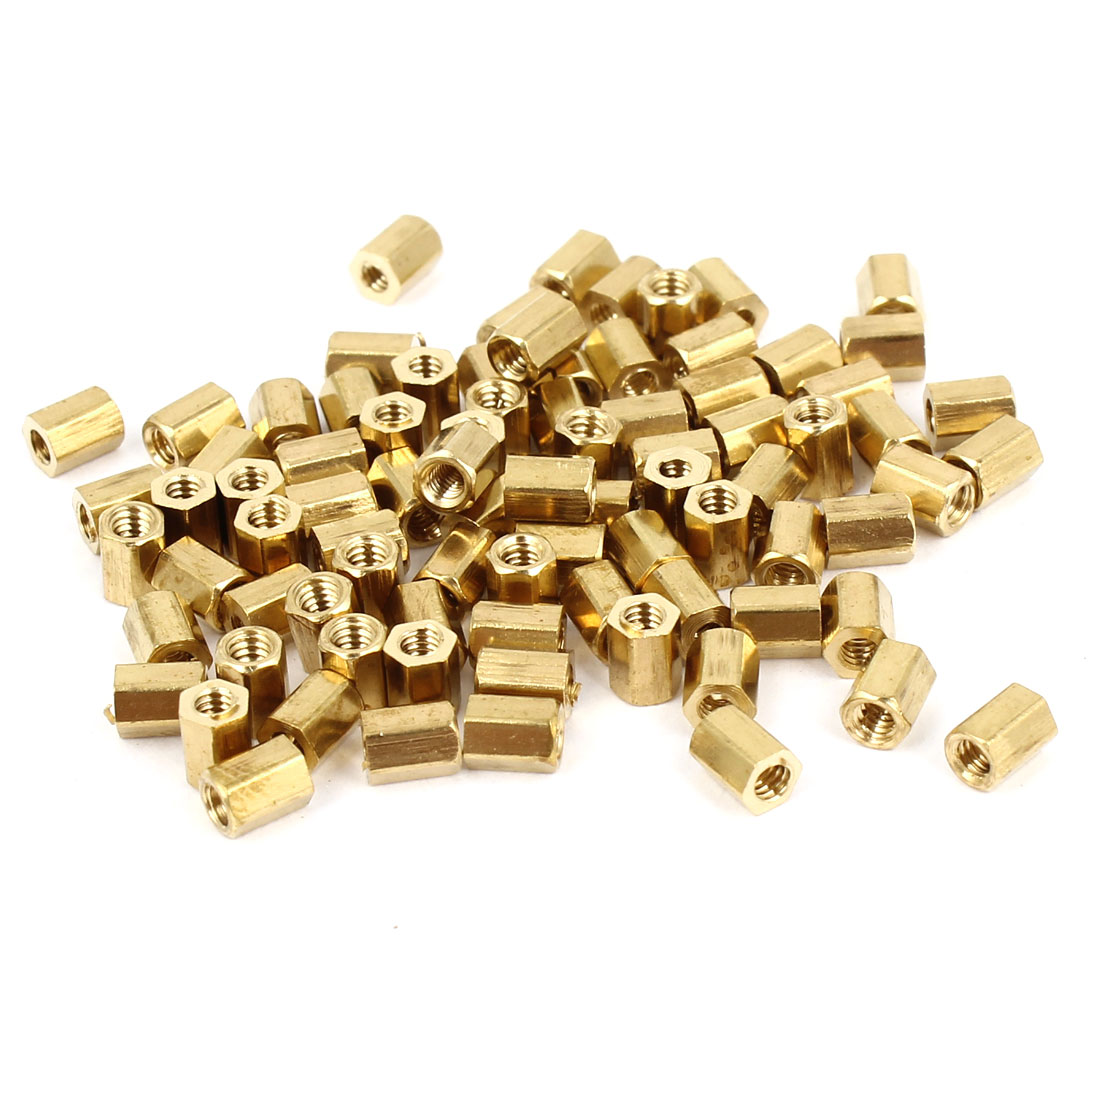 100 Pcs M2 Female Thread Brass Pillar Standoff Hexagonal Spacer 4mm Length